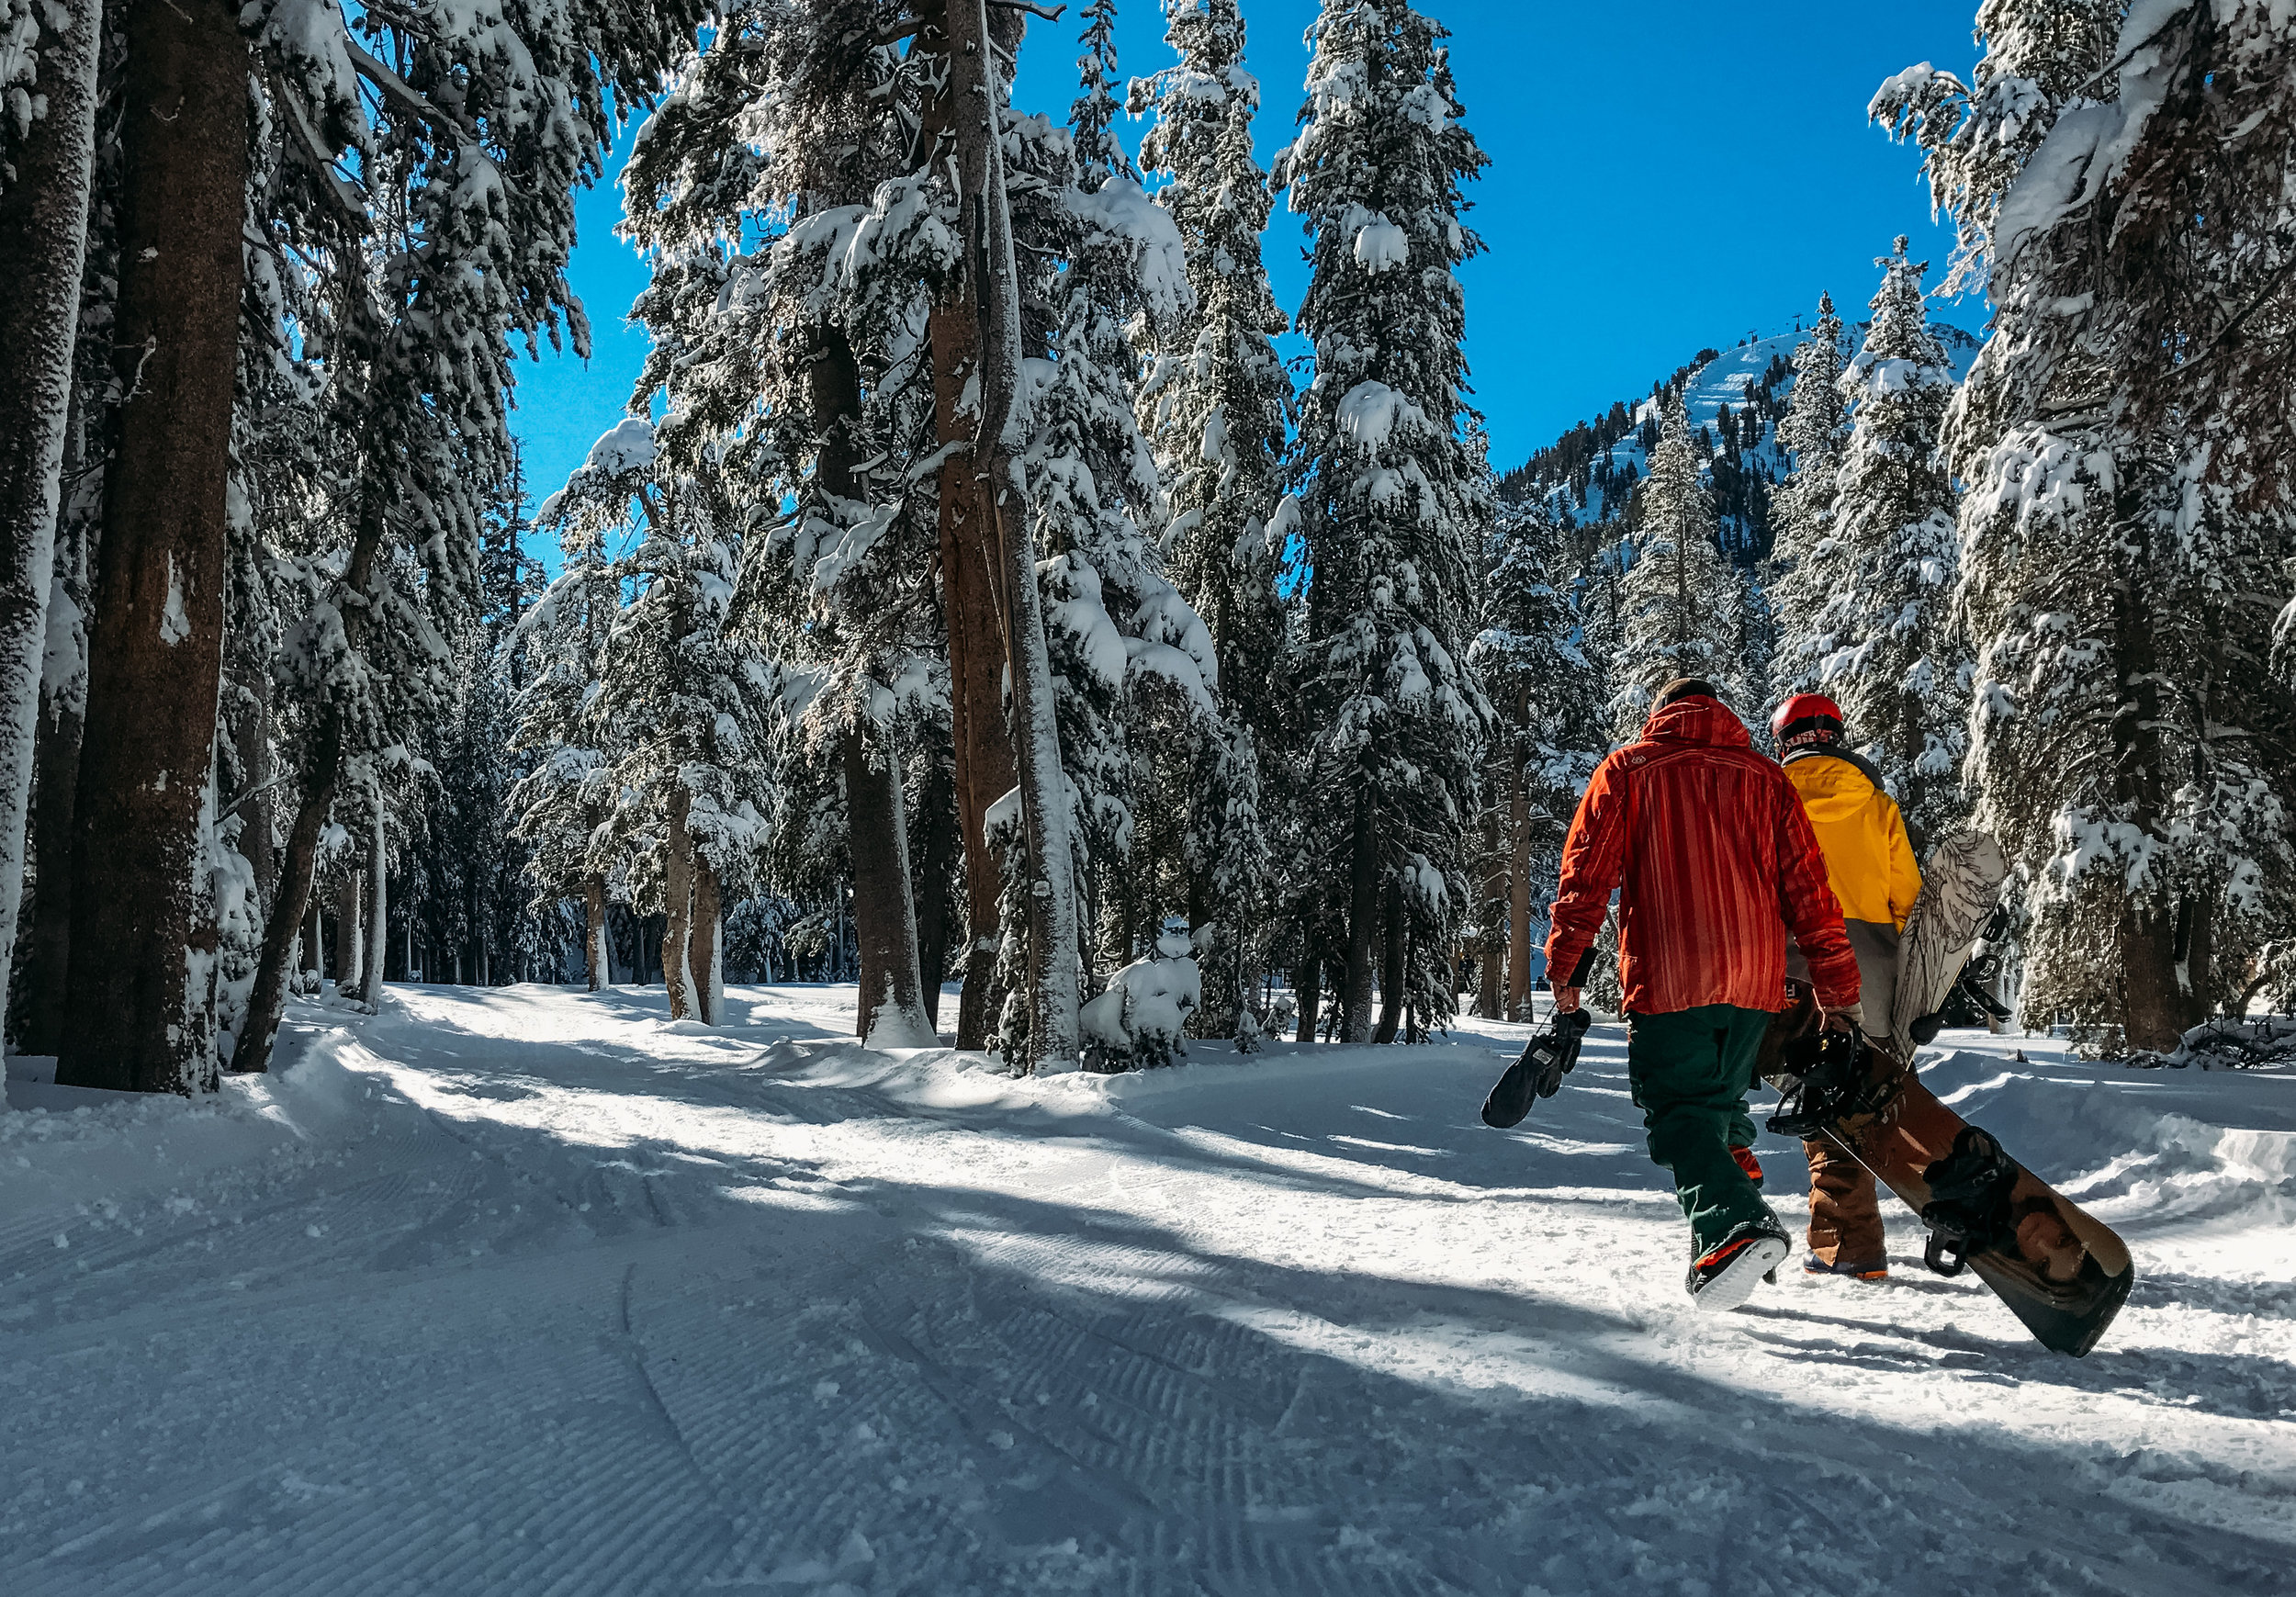 Walking with snowboards on Blackcomb Mountain on a bluebird day/.